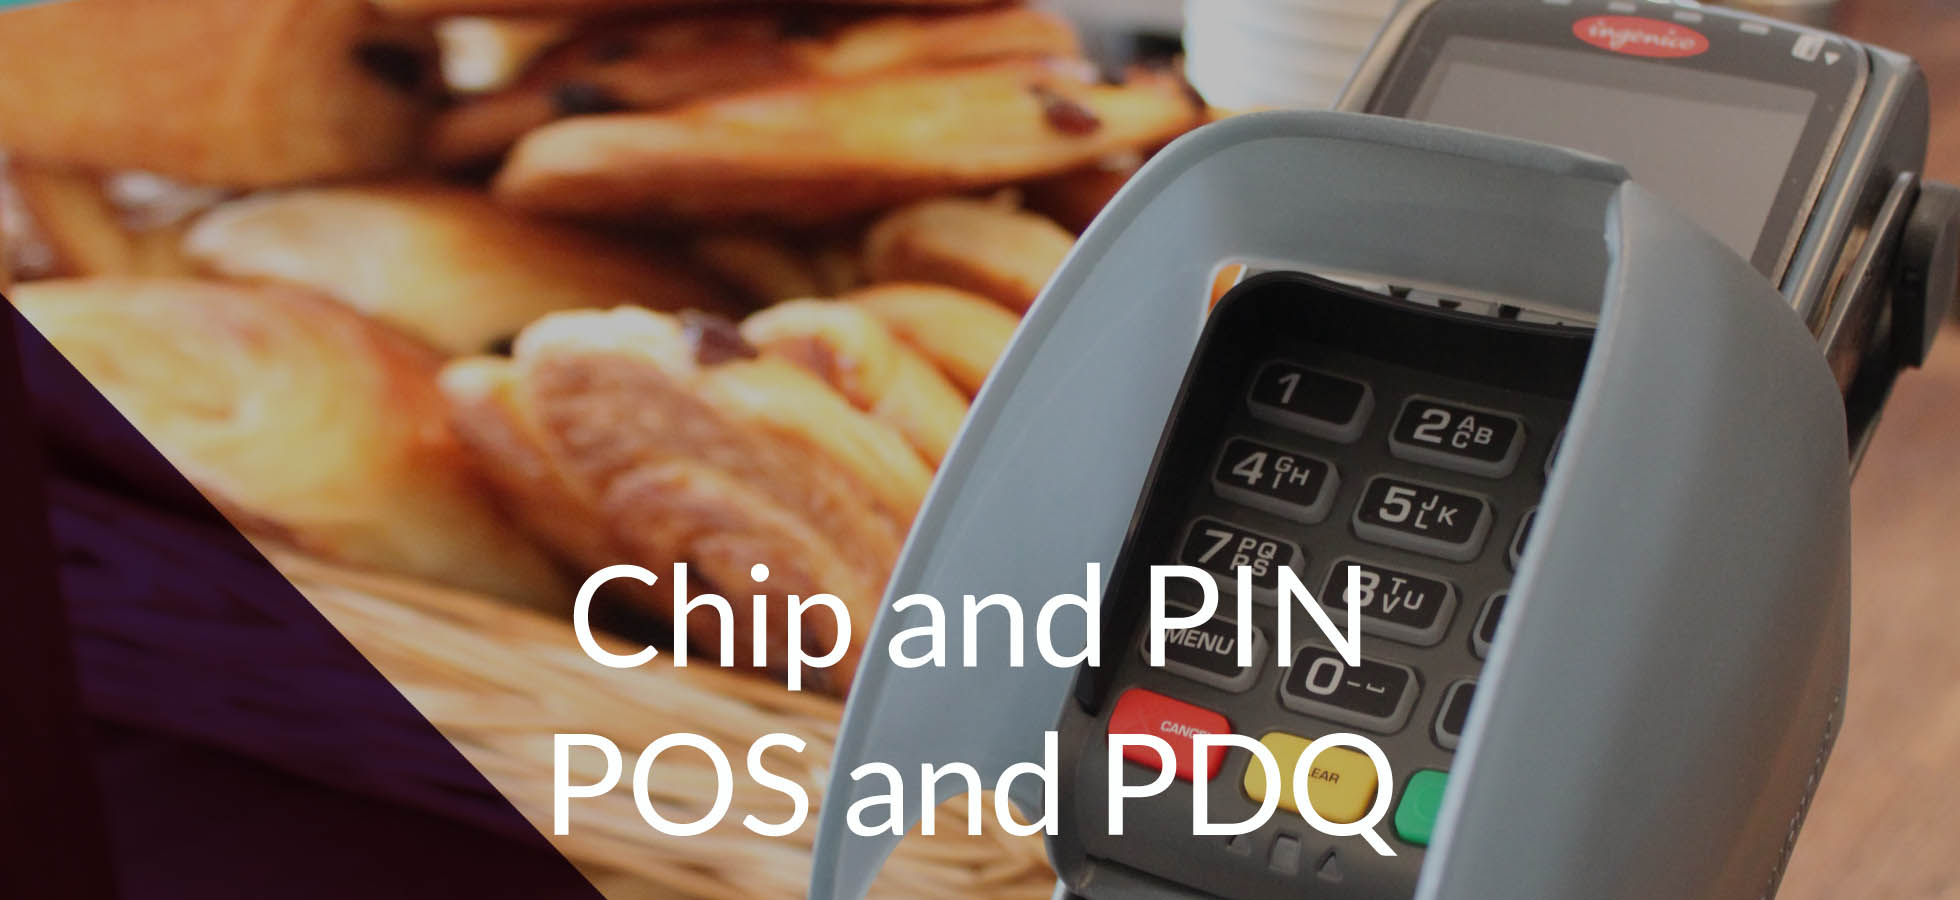 Chip and pin POS and PDQ pin security